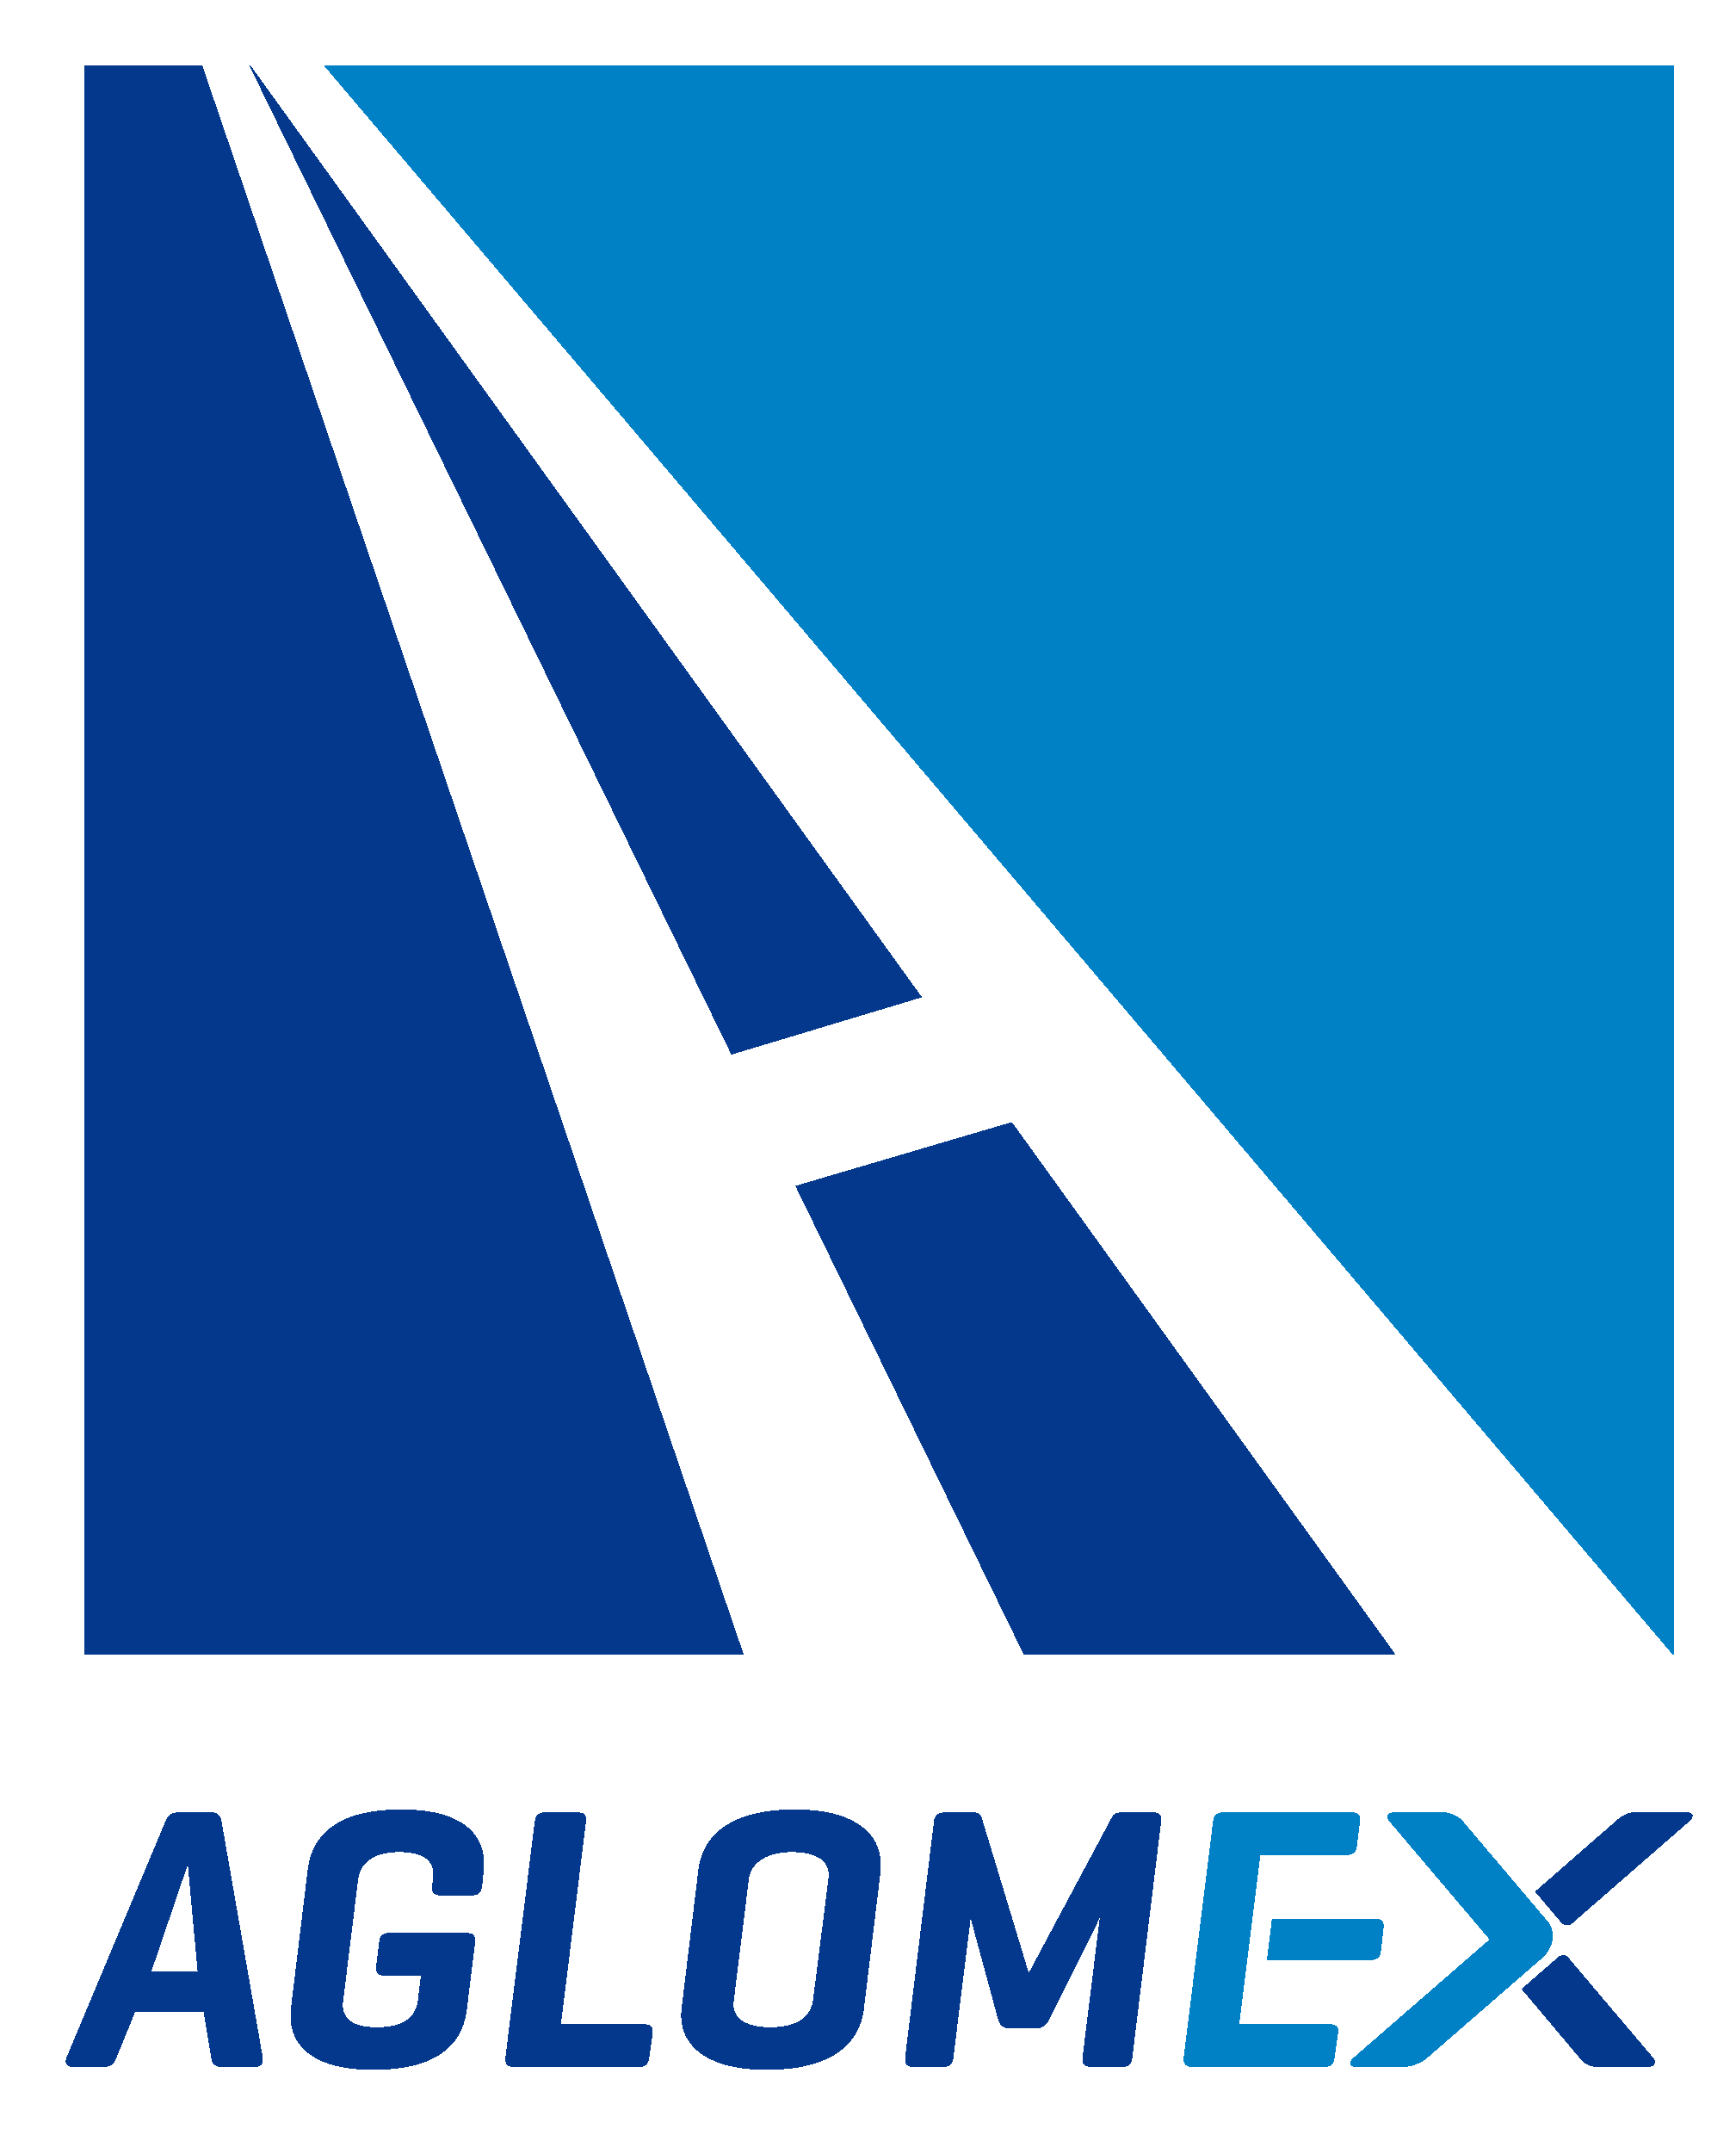 AGLOMEX S.A.